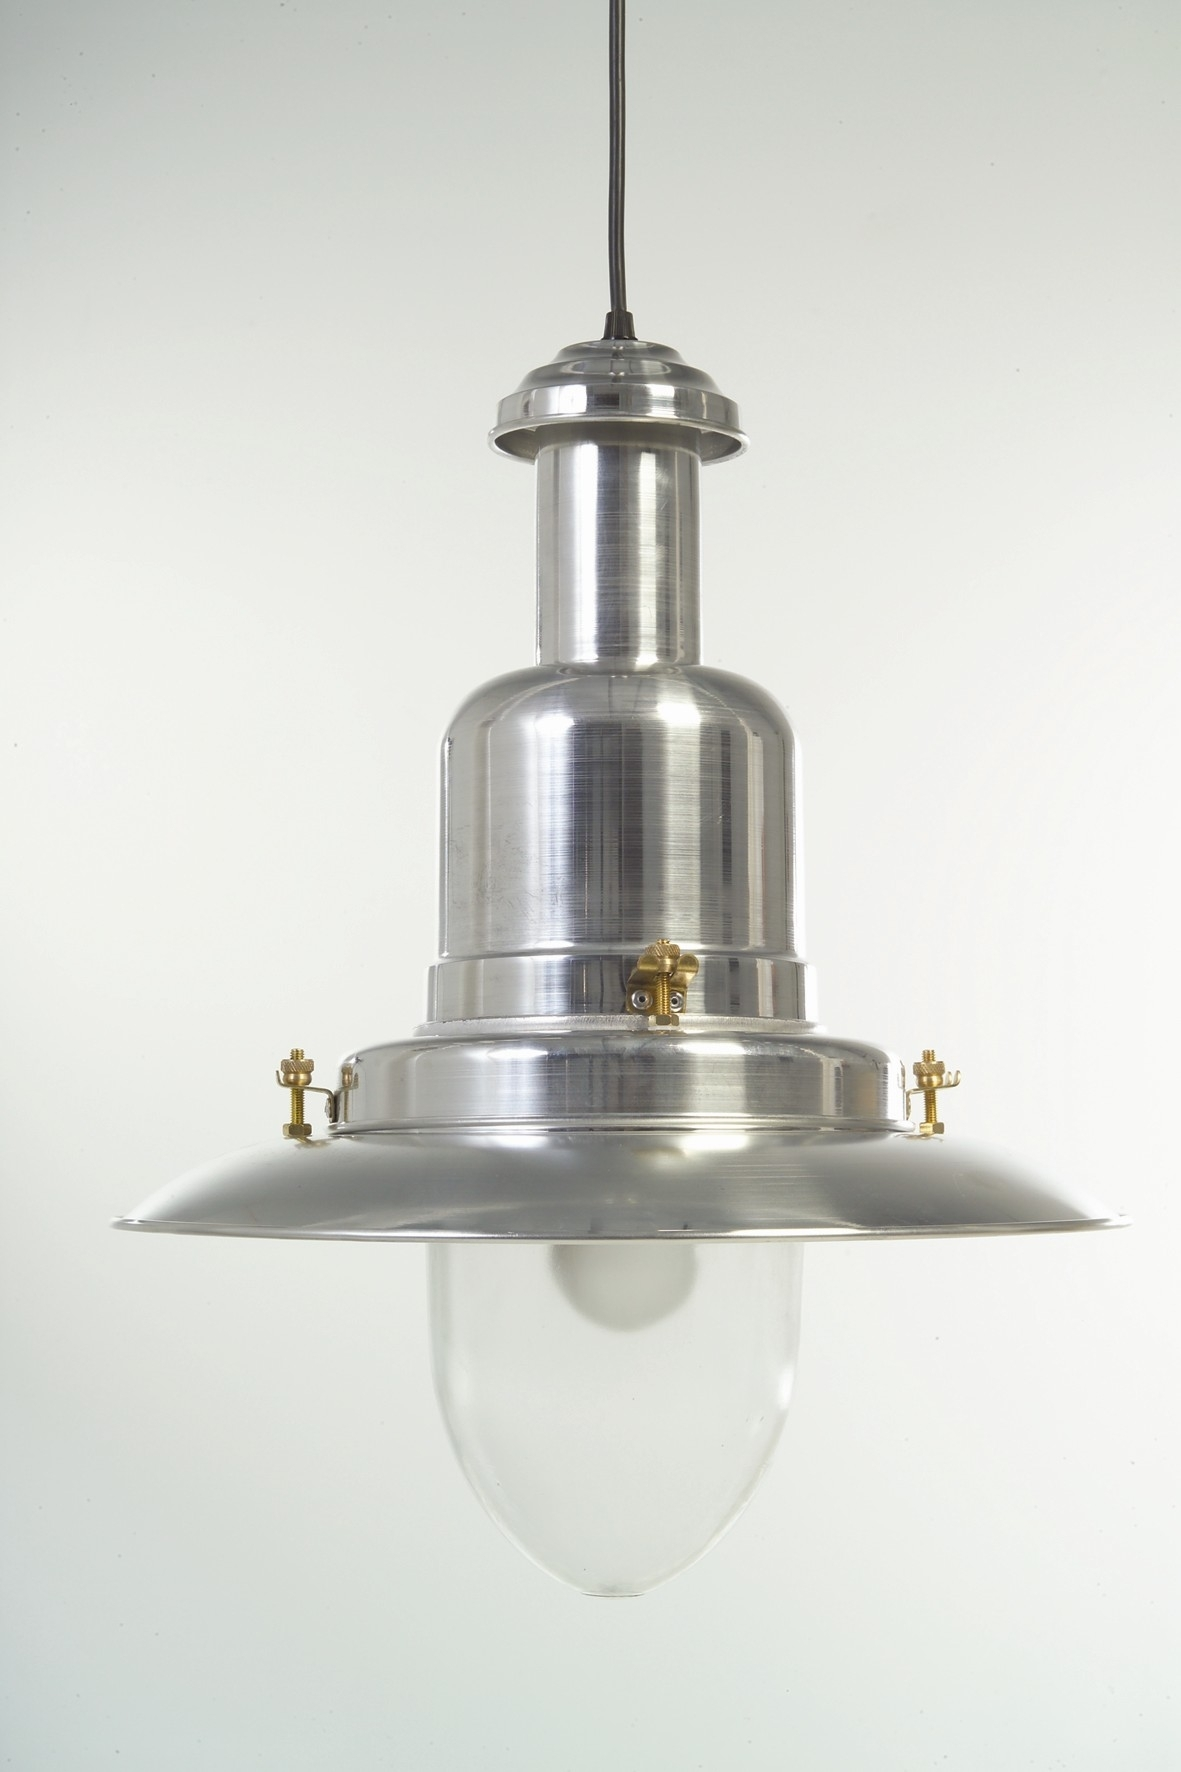 Home :: Lighting :: Fisherman's Pendant Light – Aluminium – Extra Throughout New England Style Outdoor Lighting (View 11 of 15)